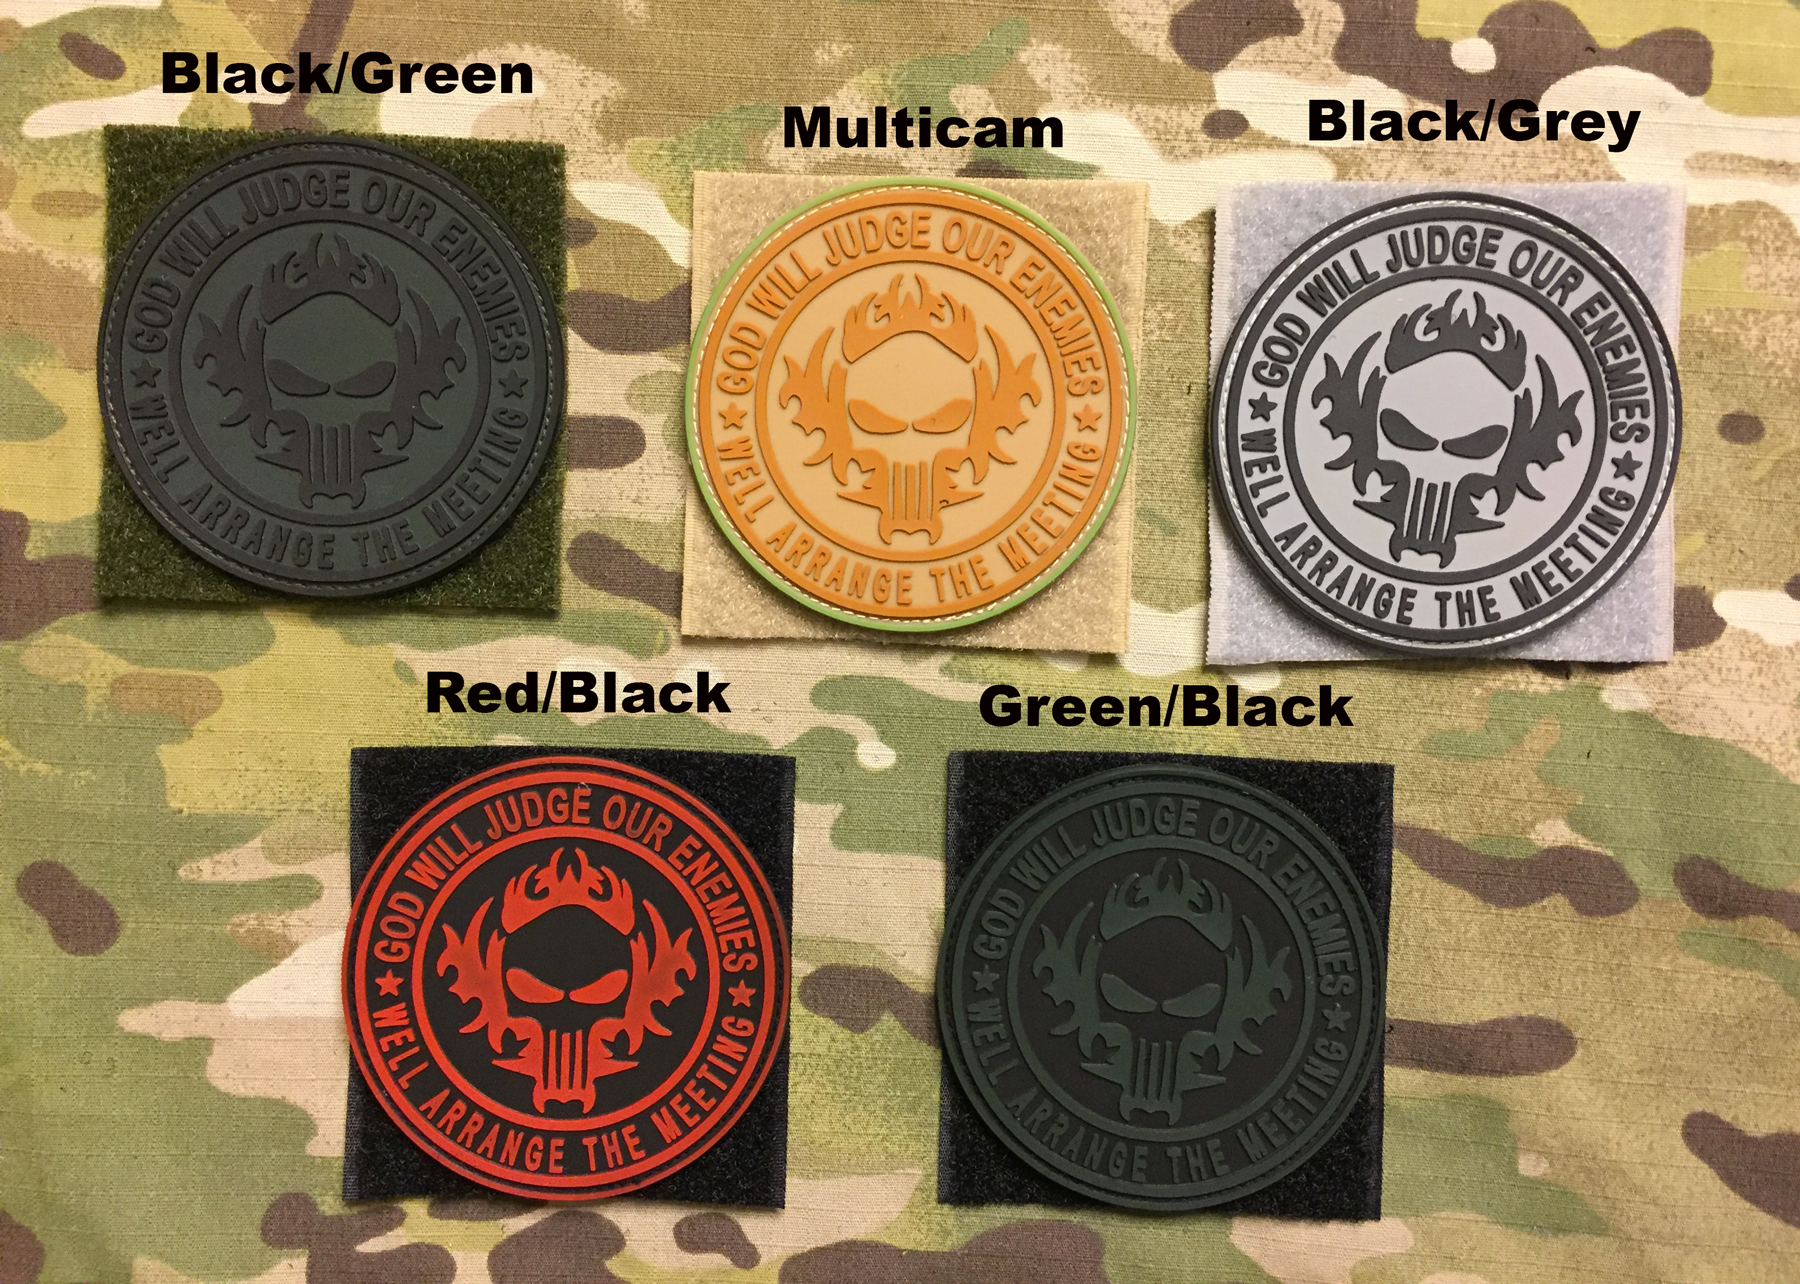 YJPF God Will Judge Our Enemies - Well Arrange The Meeting PVC Patch